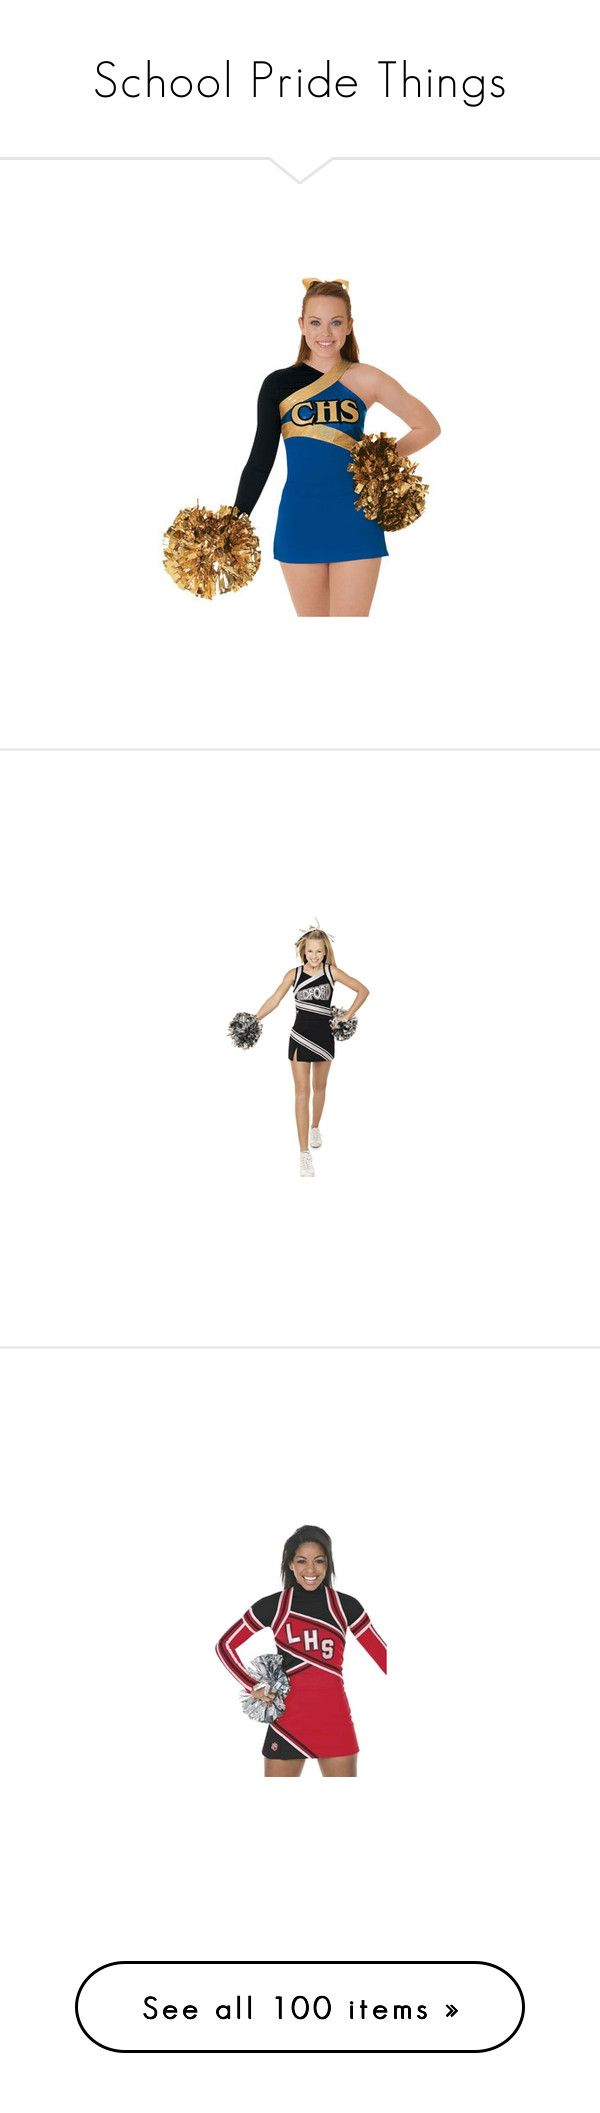 """""""School Pride Things"""" by lexius143 ❤ liked on Polyvore featuring cheer, cheerleader, cheerleading, costumes, dresses, school, cheerleader halloween costume, cheerleader costume, sports and lideres de torcida"""